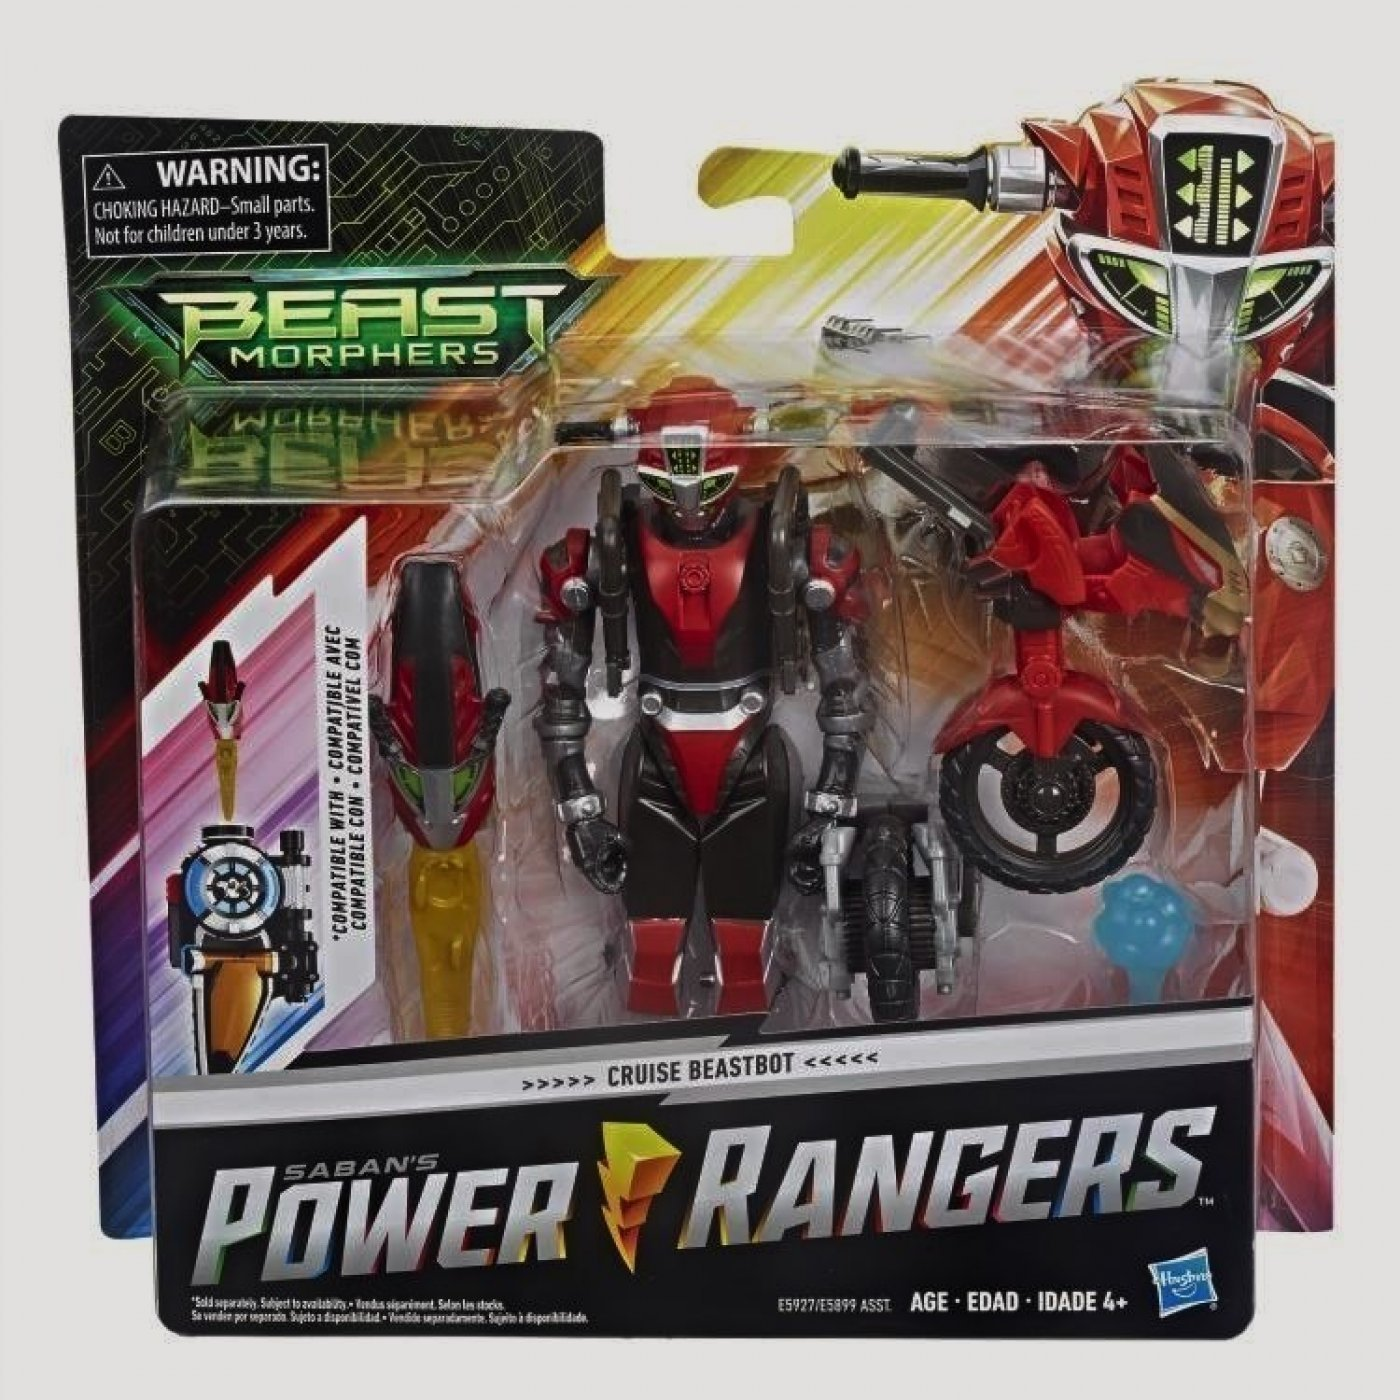 Power Ranger Cruiser Beastbot